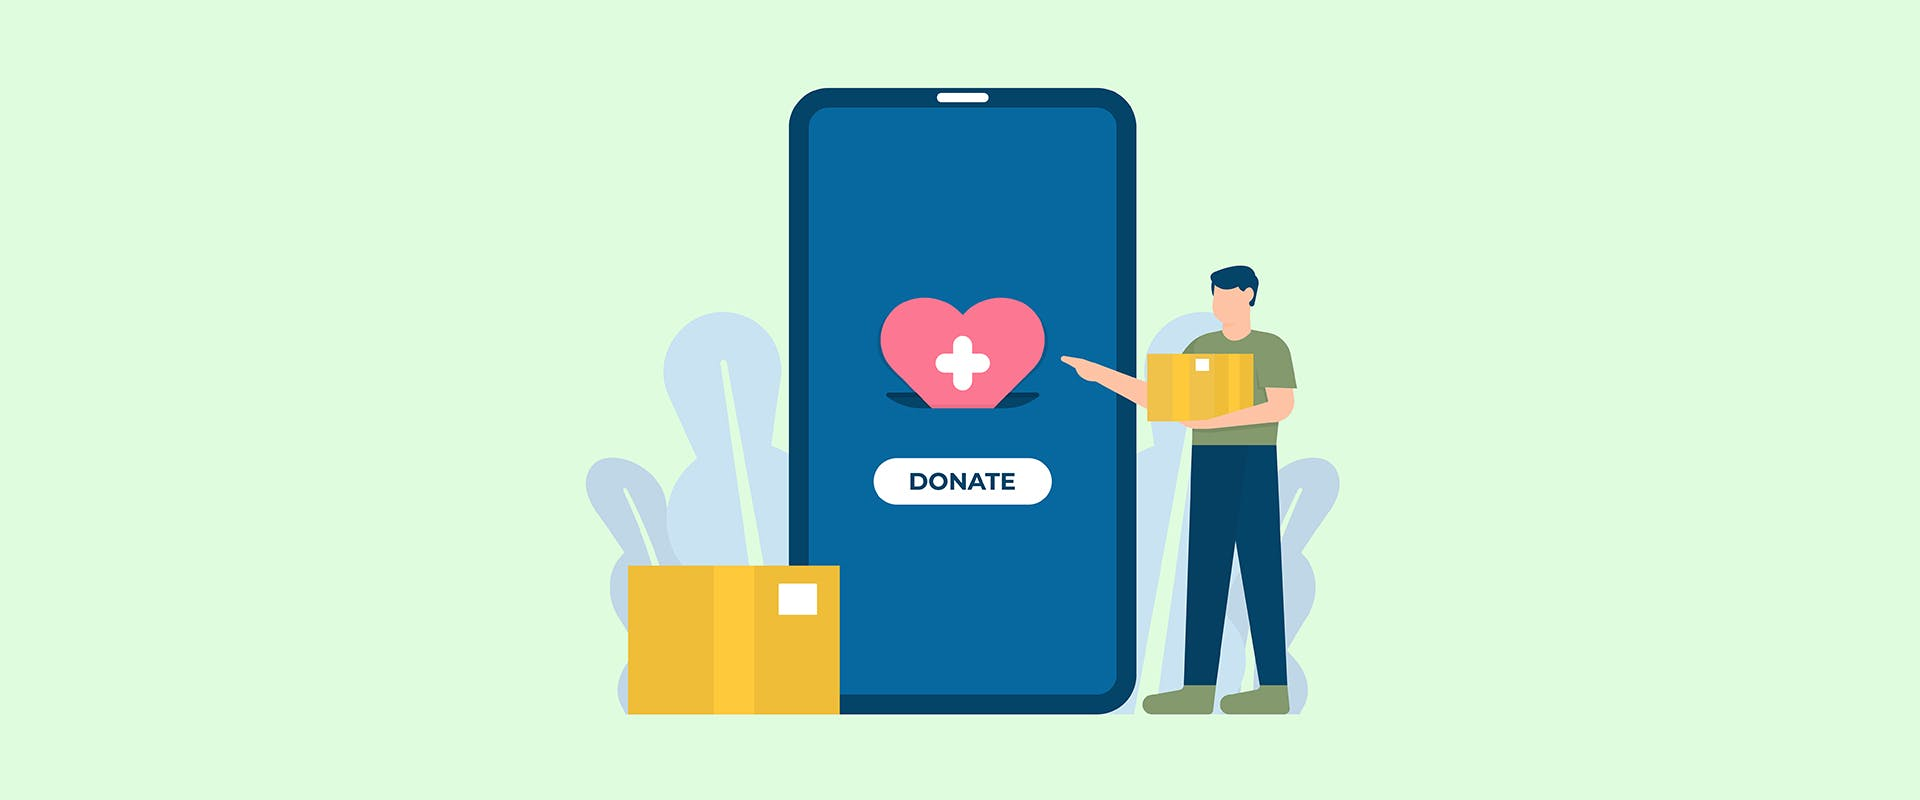 Illustration of smartphone with the word donate